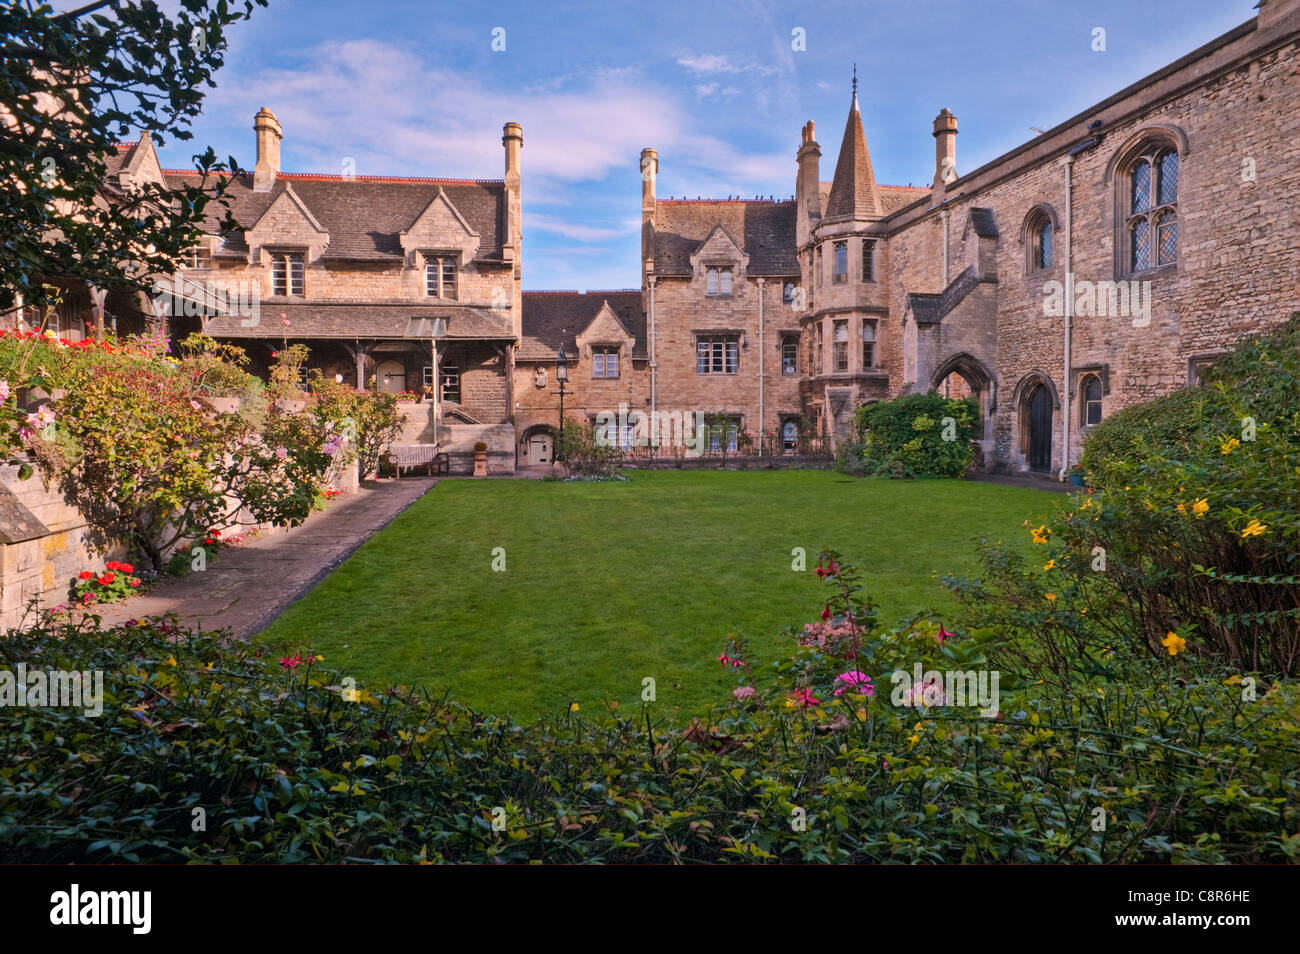 Browne's Hospital, Stamford, Lincolnshire - Stock Image